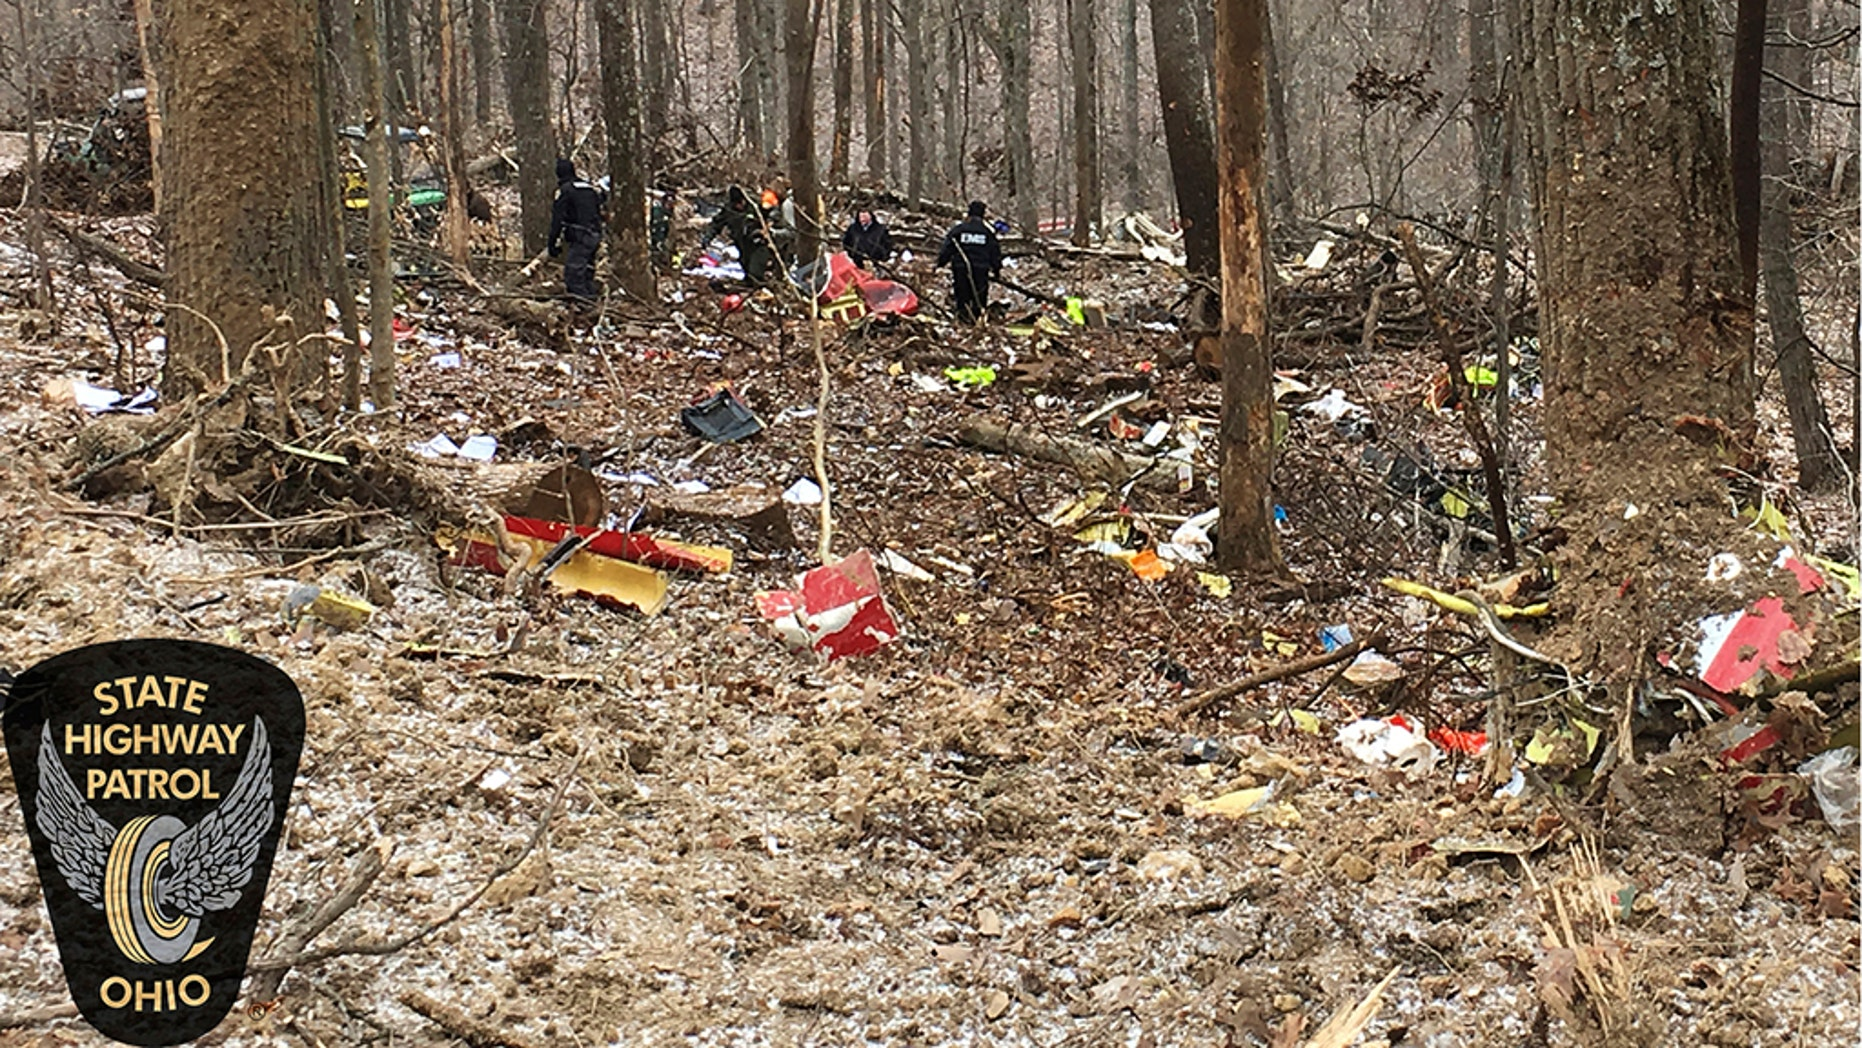 In this photo provided by the Ohio State Highway Patrol, authorities survey the scene of wreckage where a medical helicopter crashed in a remote wooded area in Brown Township, Ohio, on Tuesday on its way to pick up a patient. (Ohio State Highway Patrol via AP)